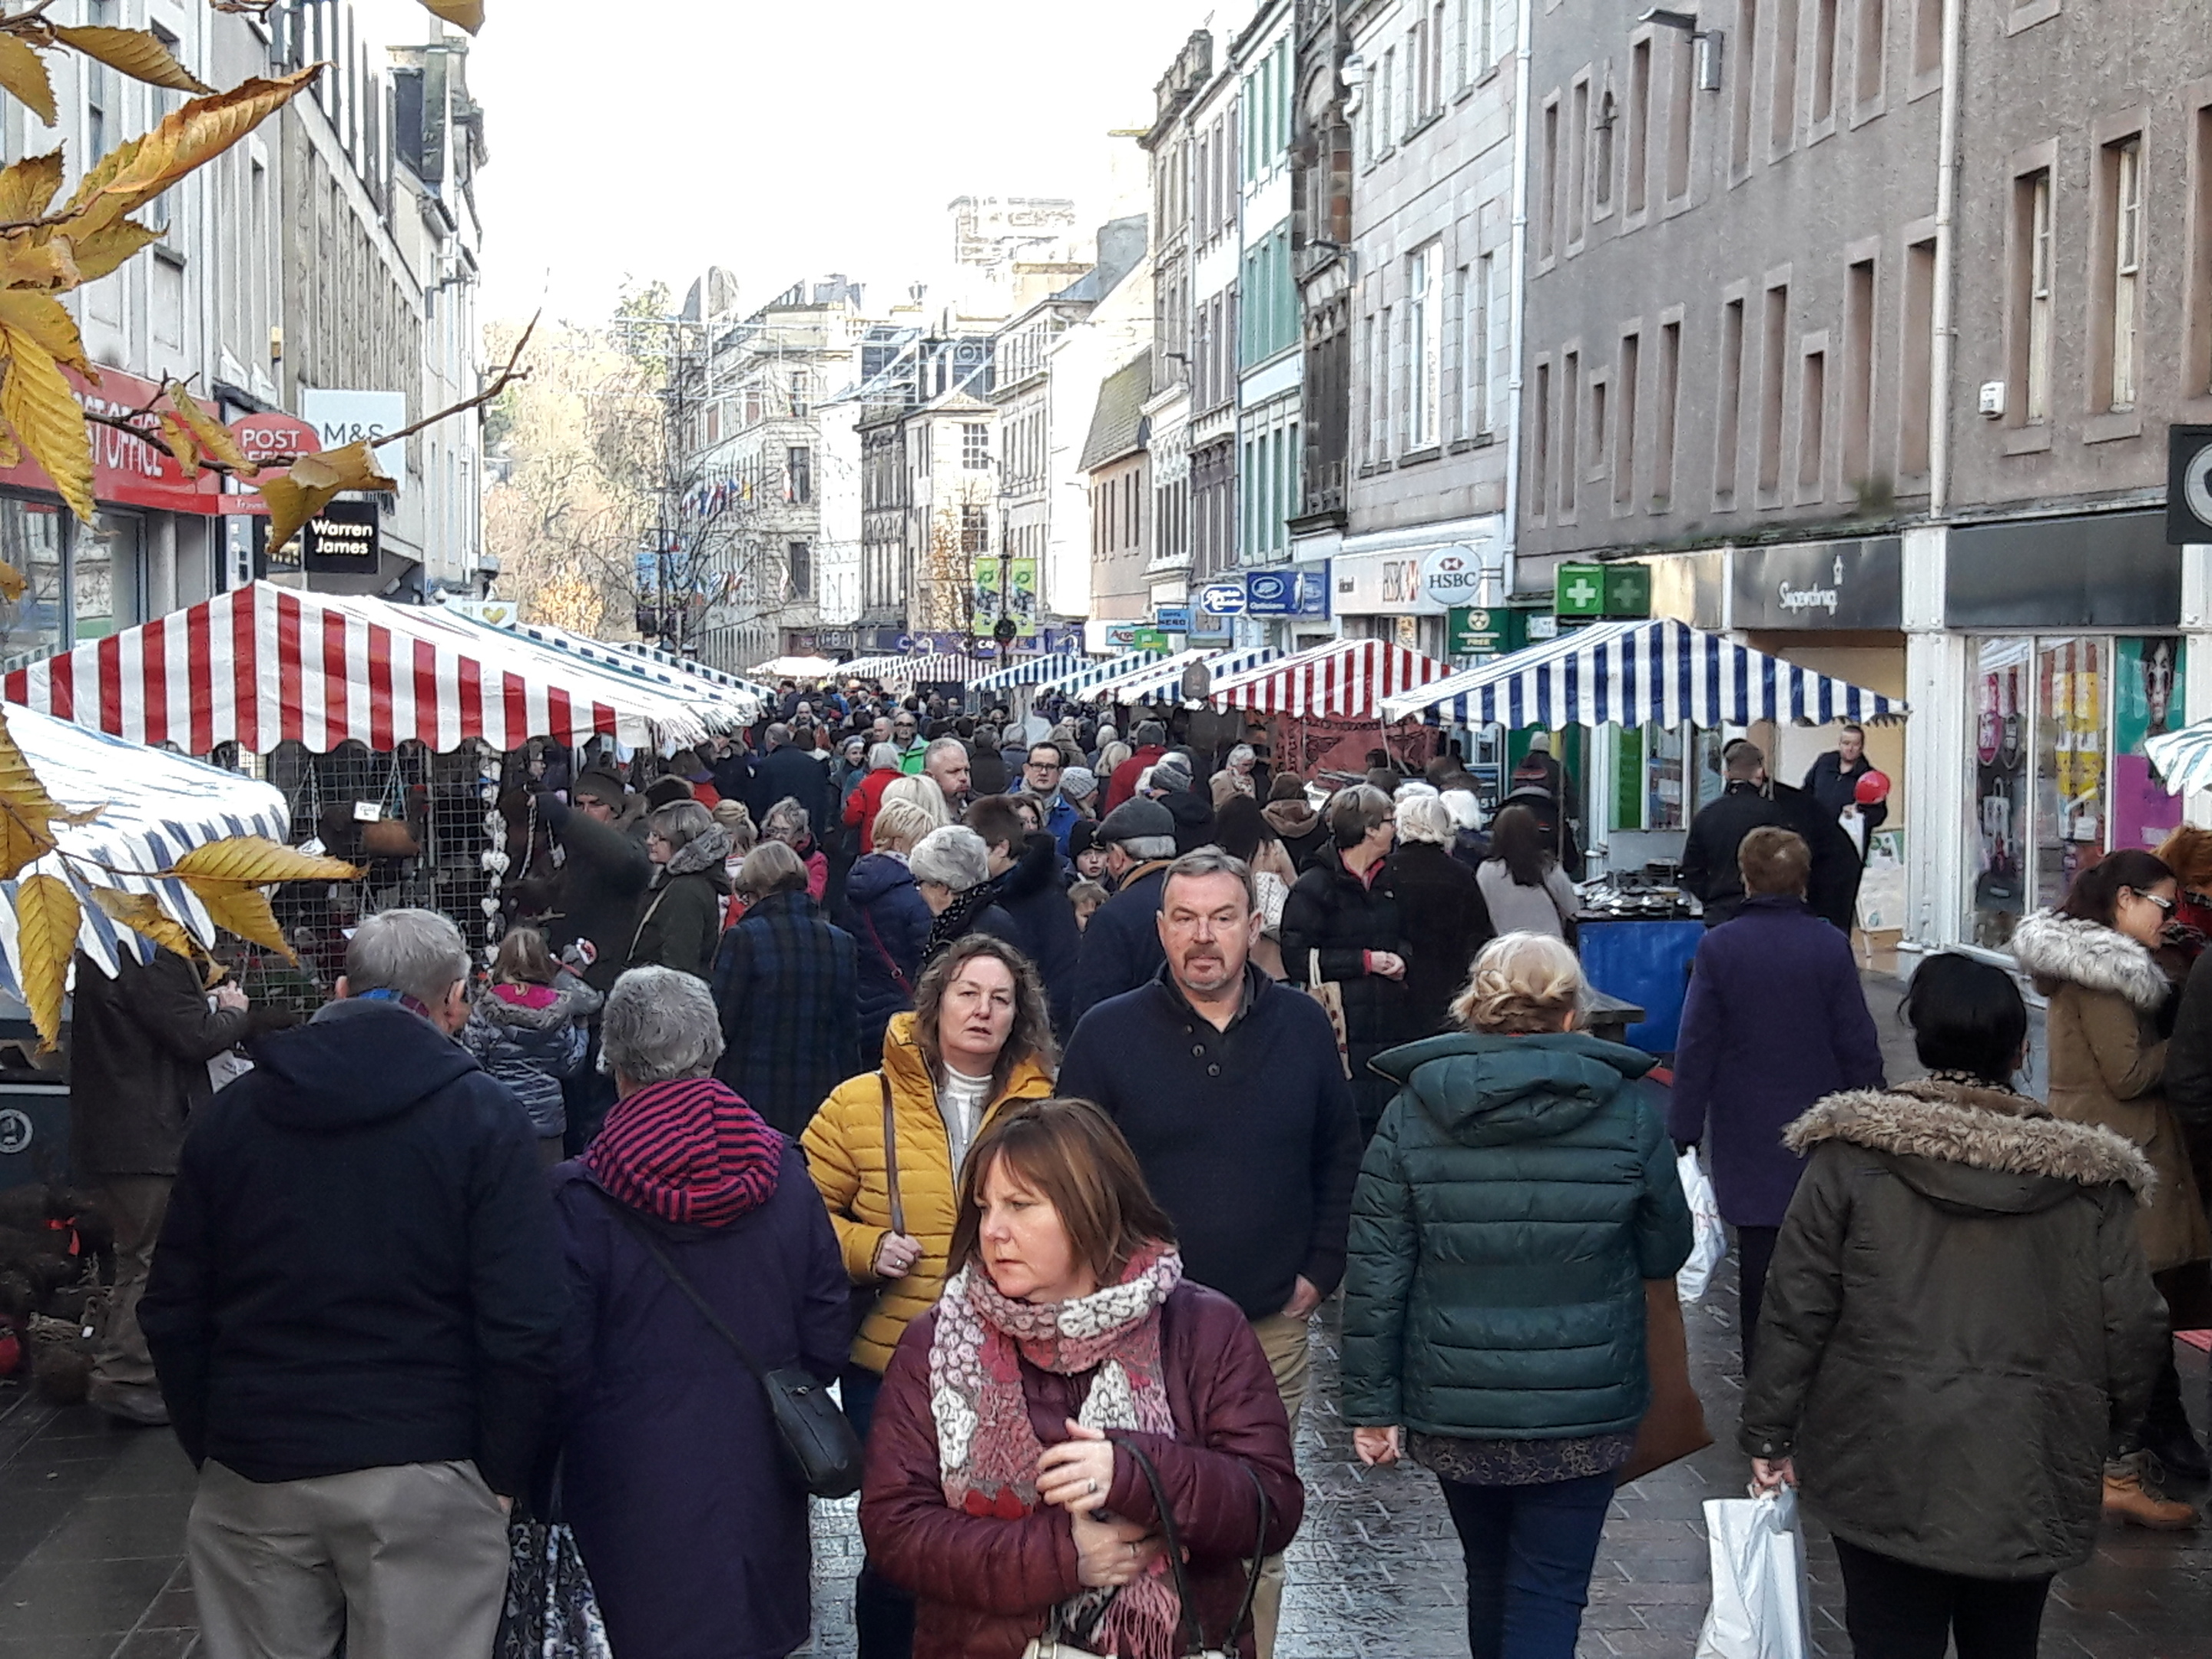 Shoppers thronging to Perth, where the High Street has been filled with stalls.